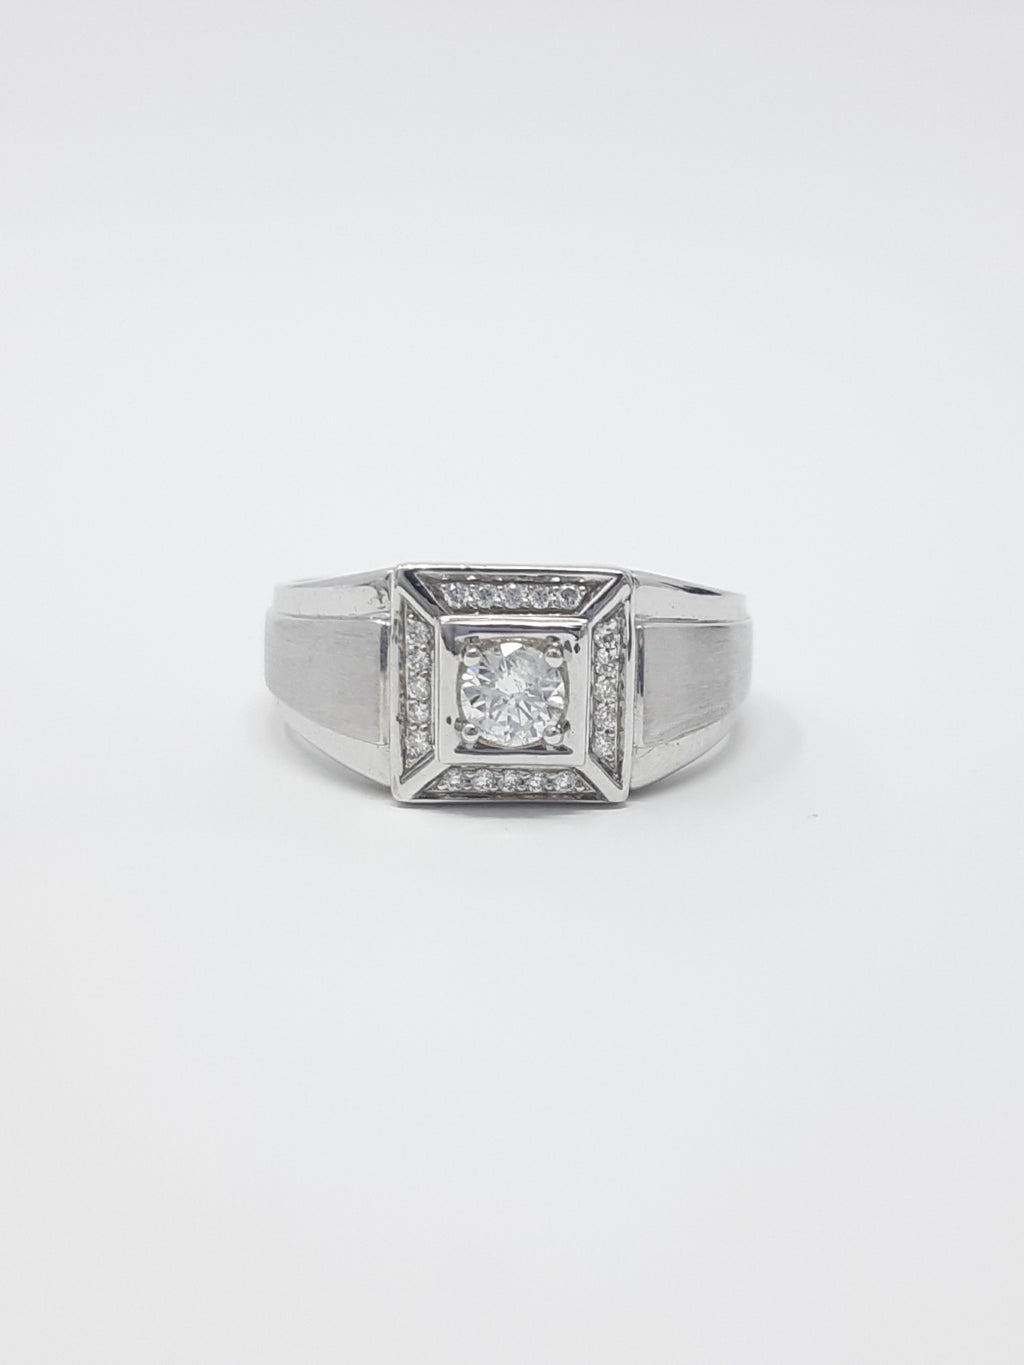 Gents Canadian Diamond Ring